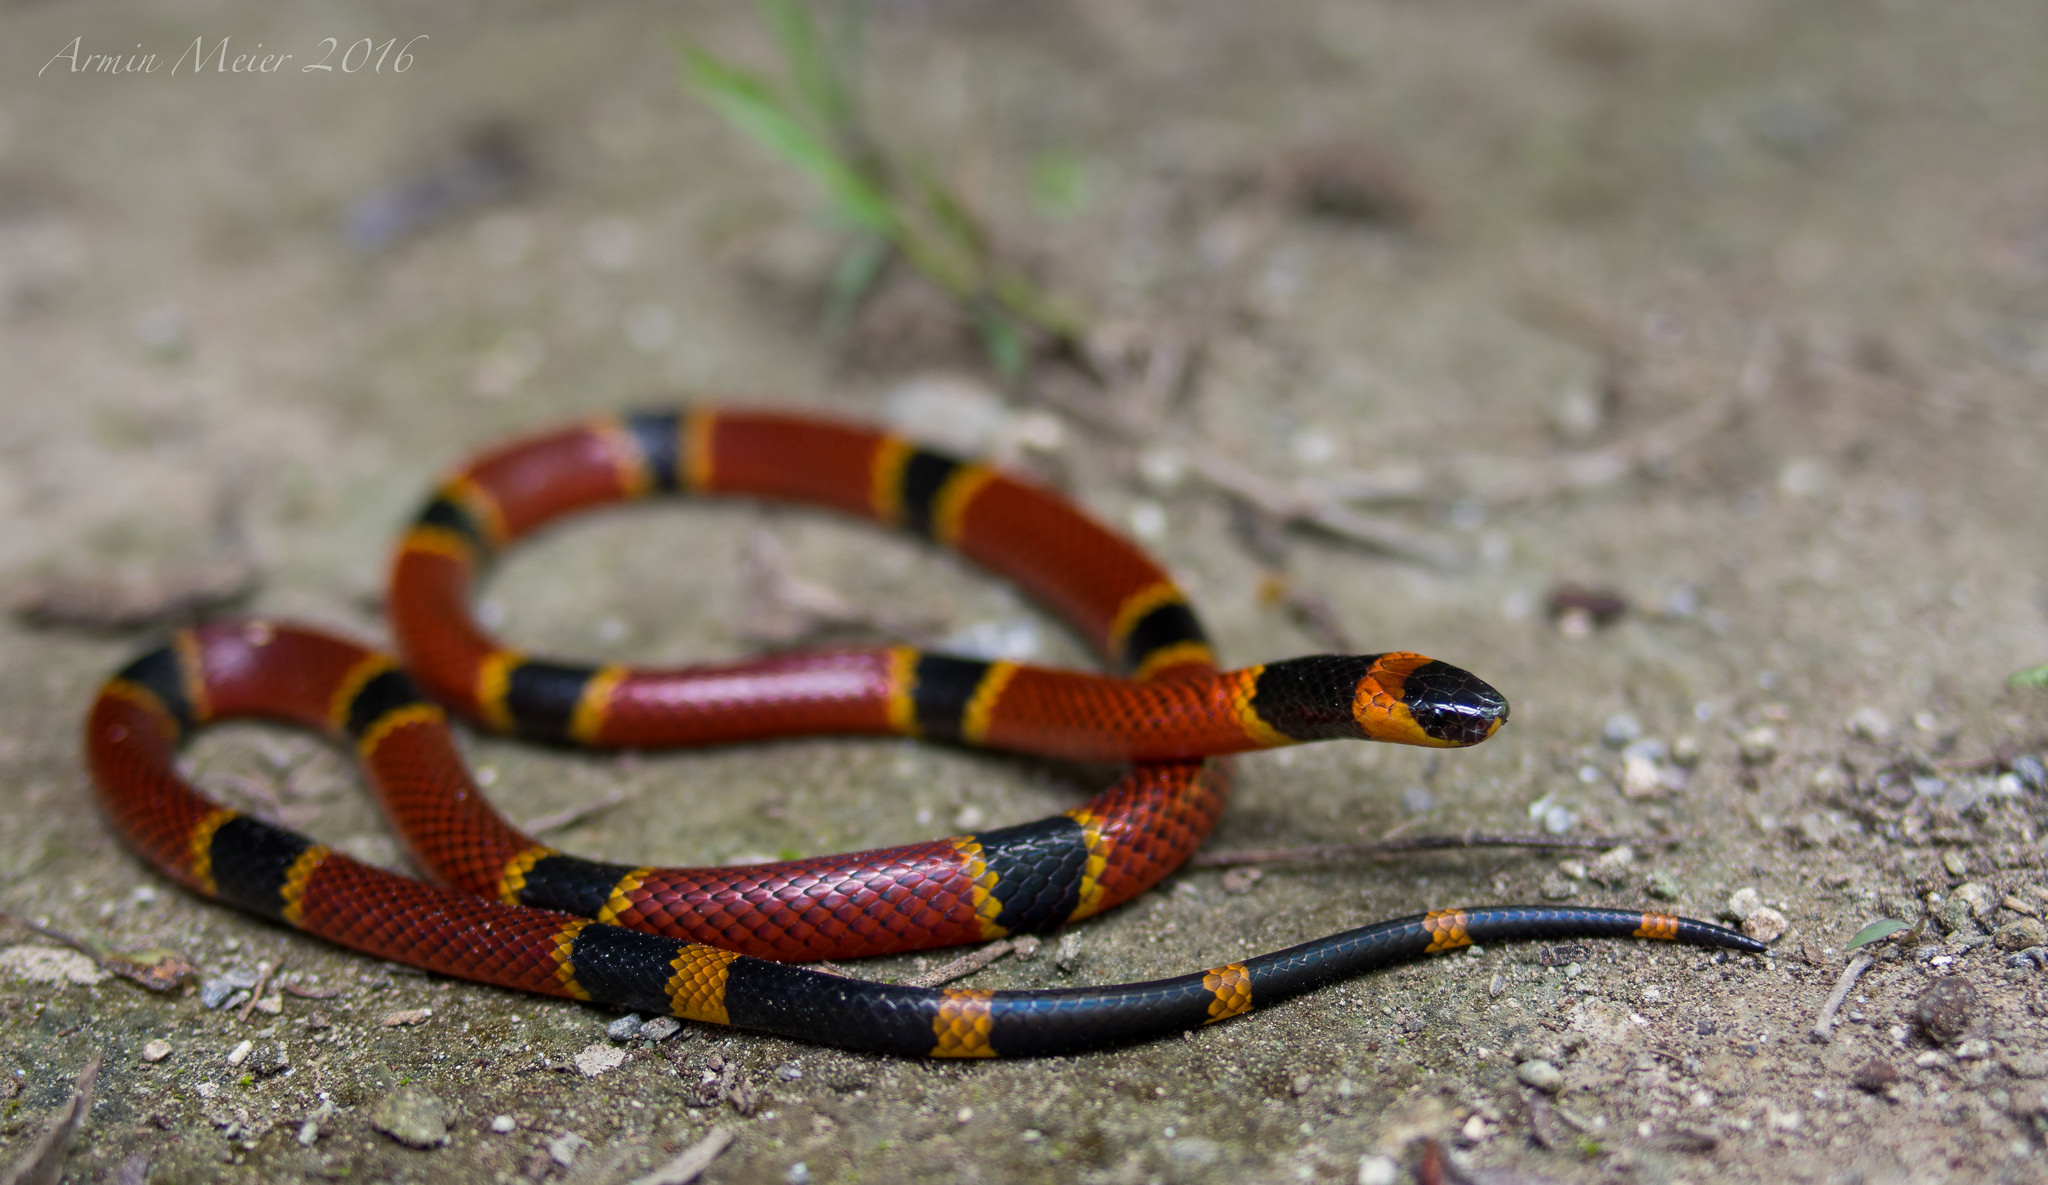 Variable Coralsnake photo by Armin Meier